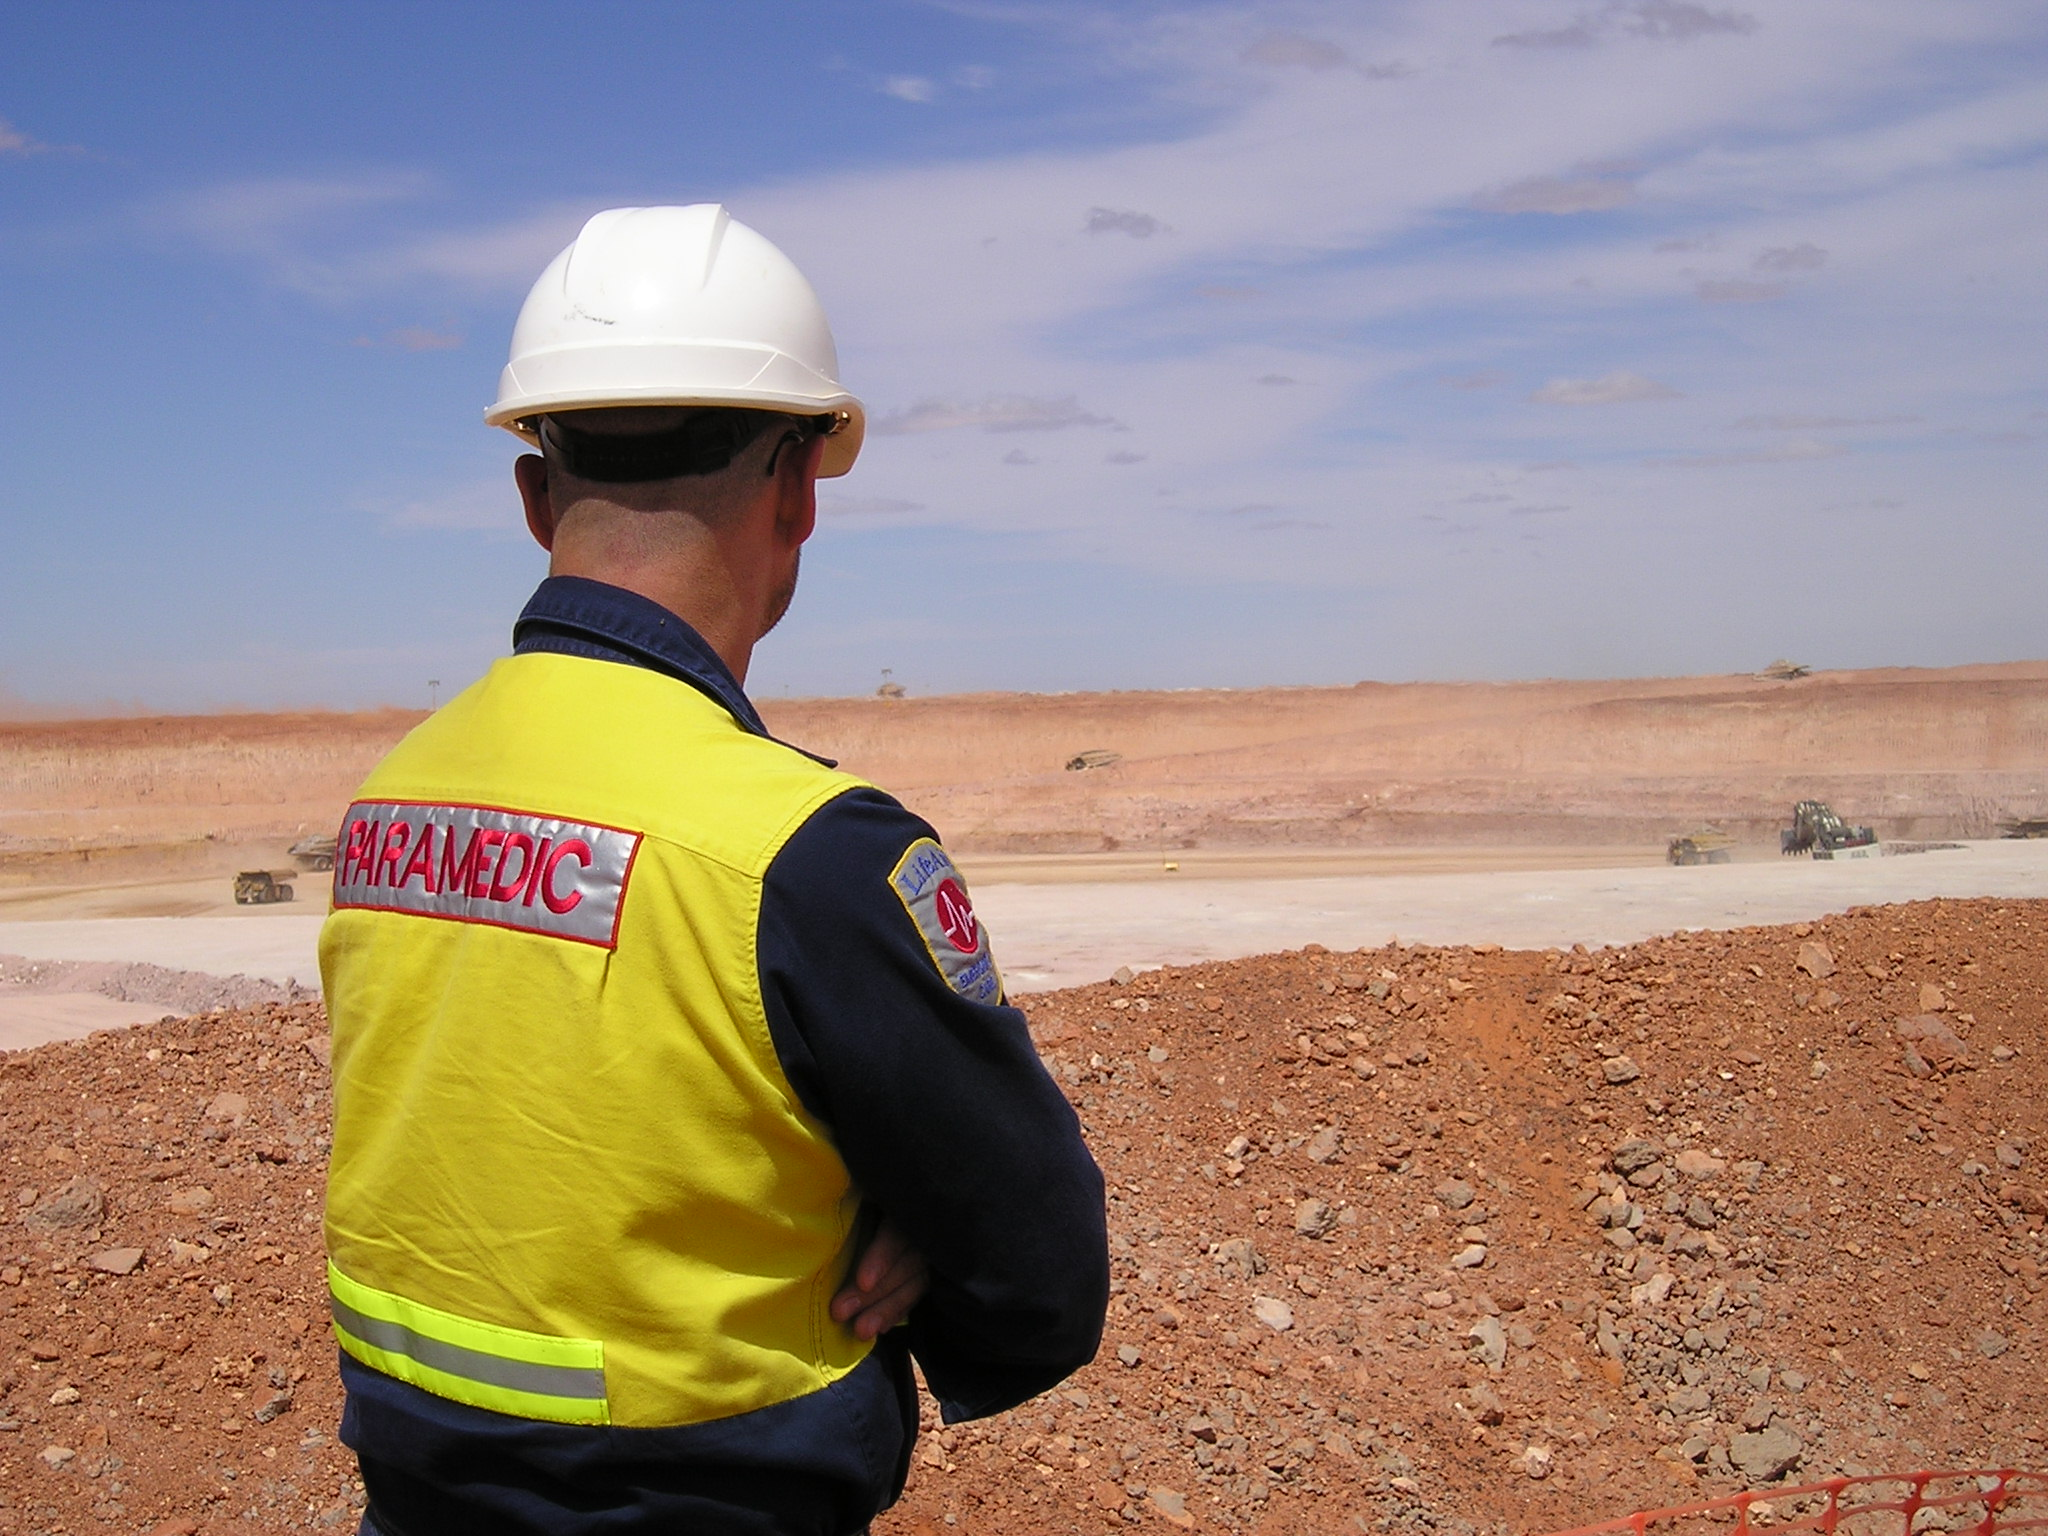 LifeAid paramedic working at a mine site